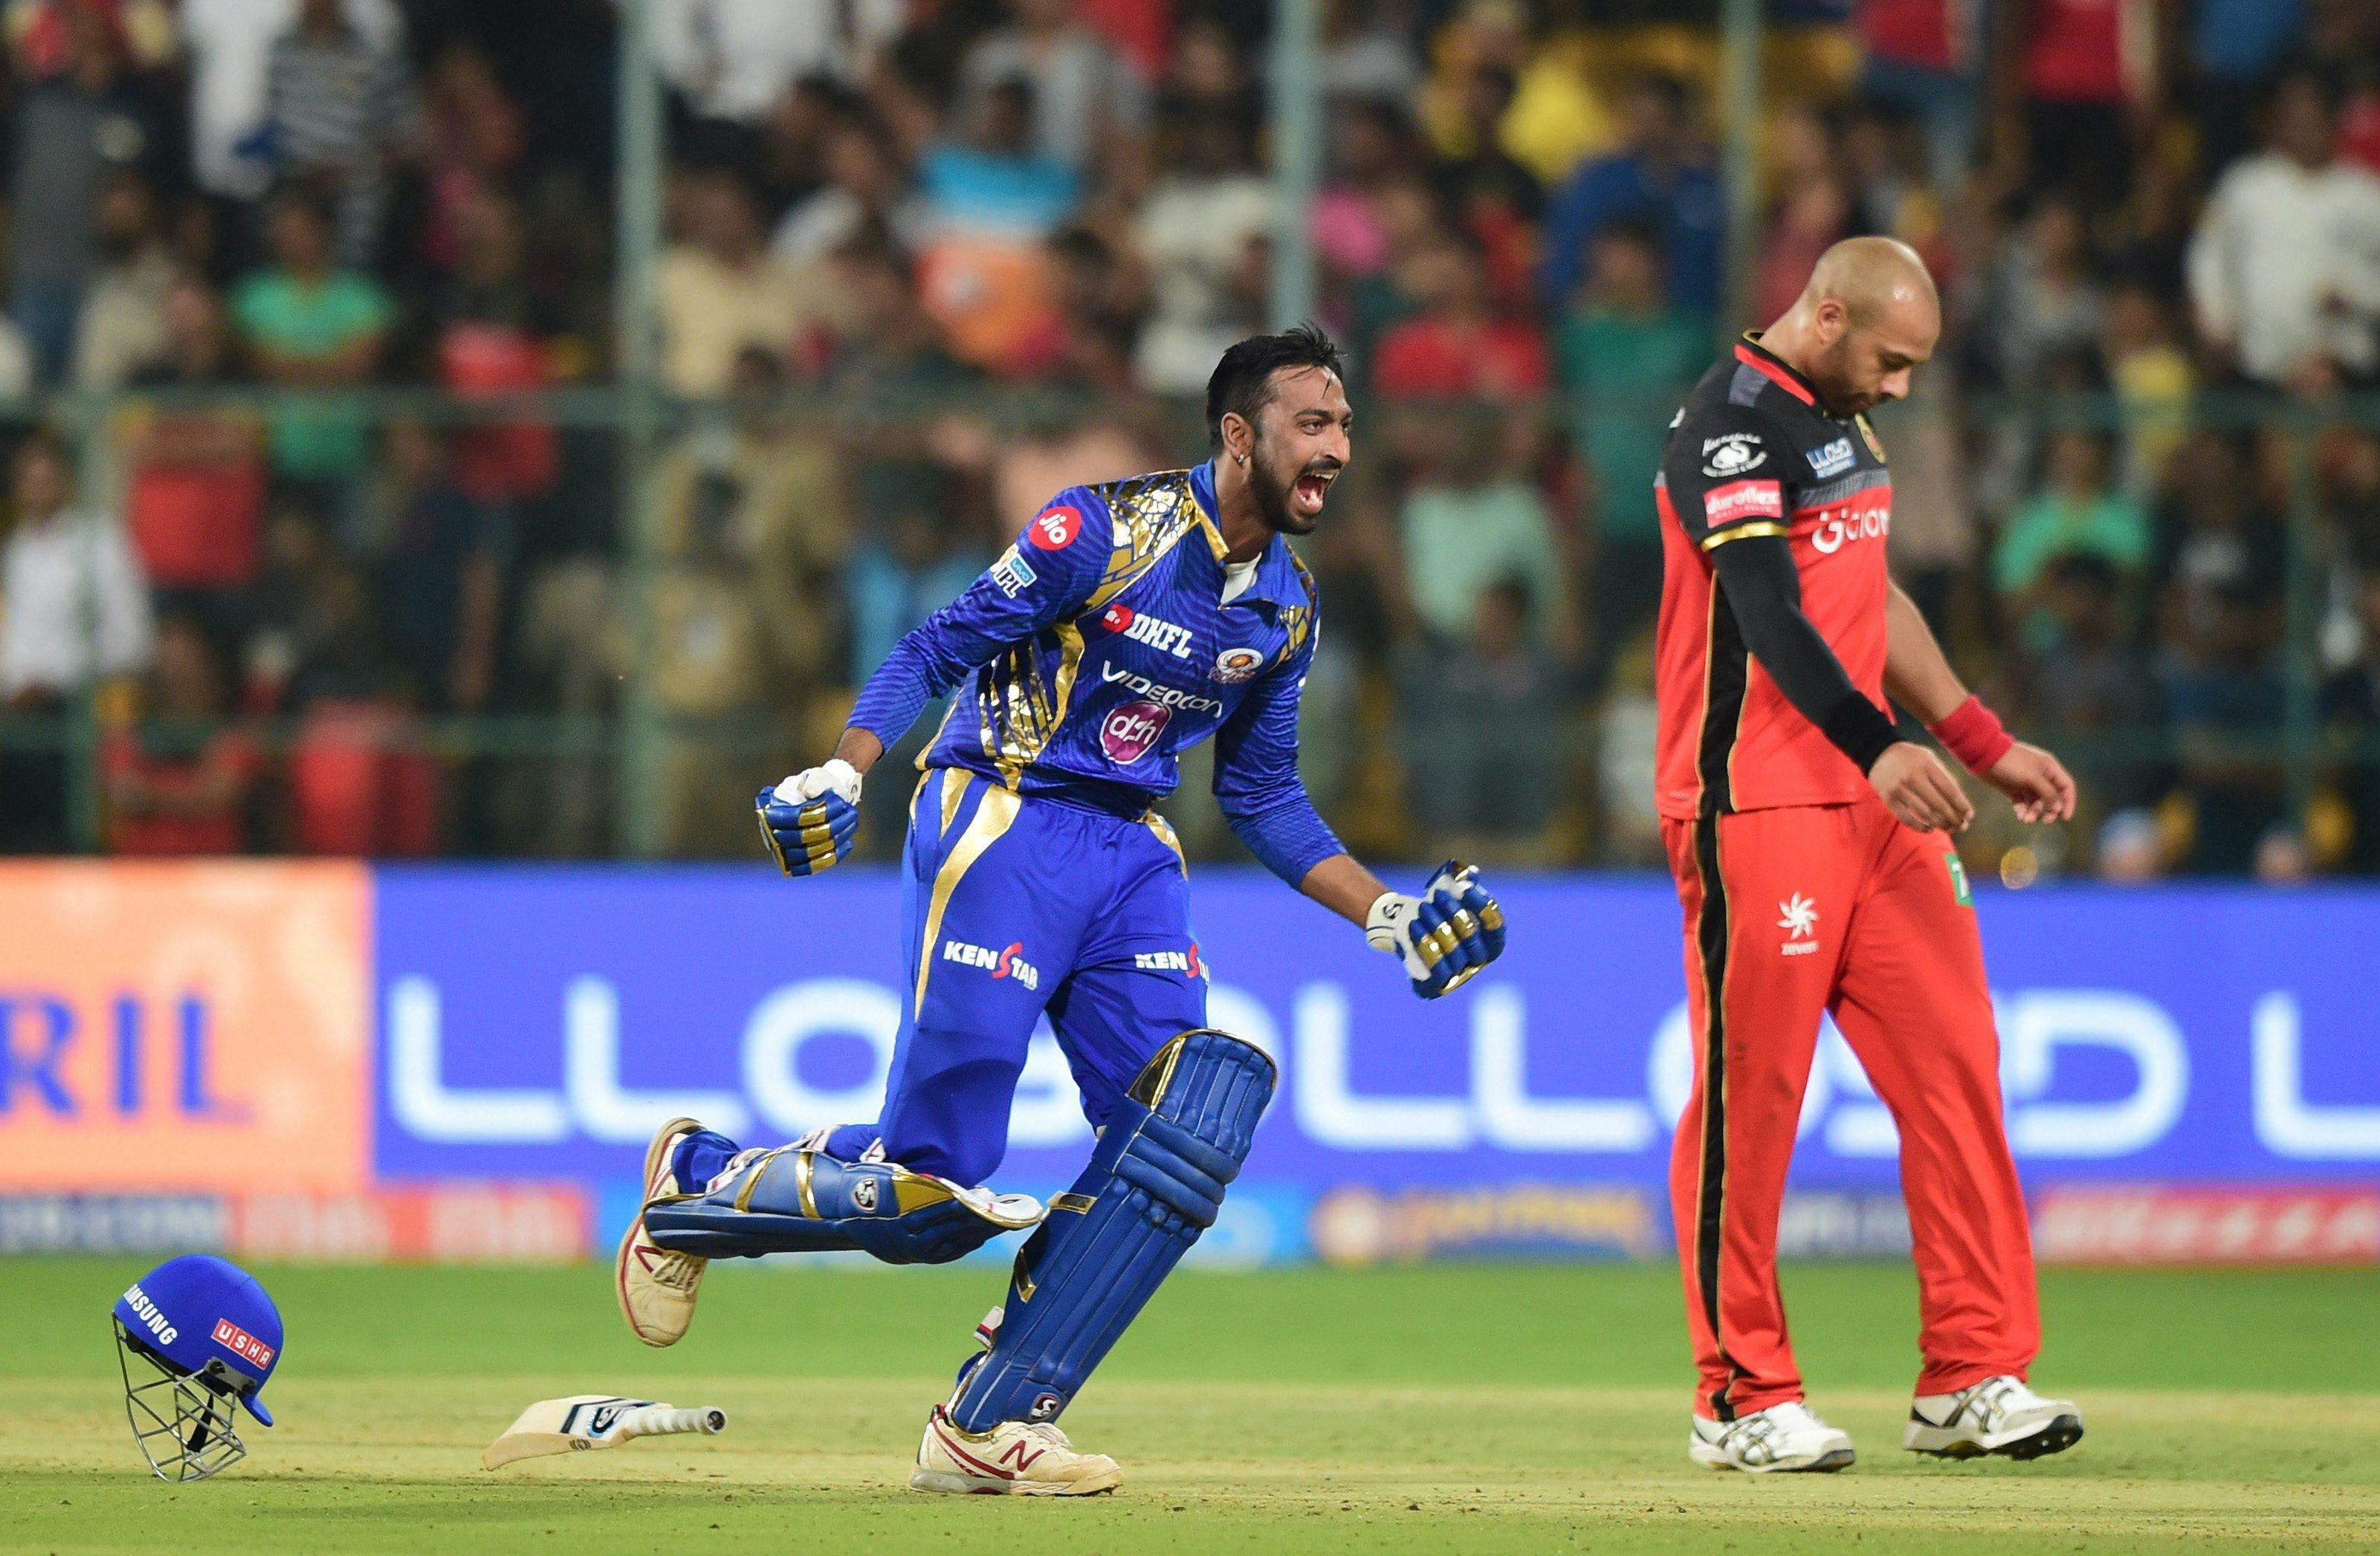 Mumbai Indians bought Krunal Pandya back for Rs 8.8 crore after his heroics in 201